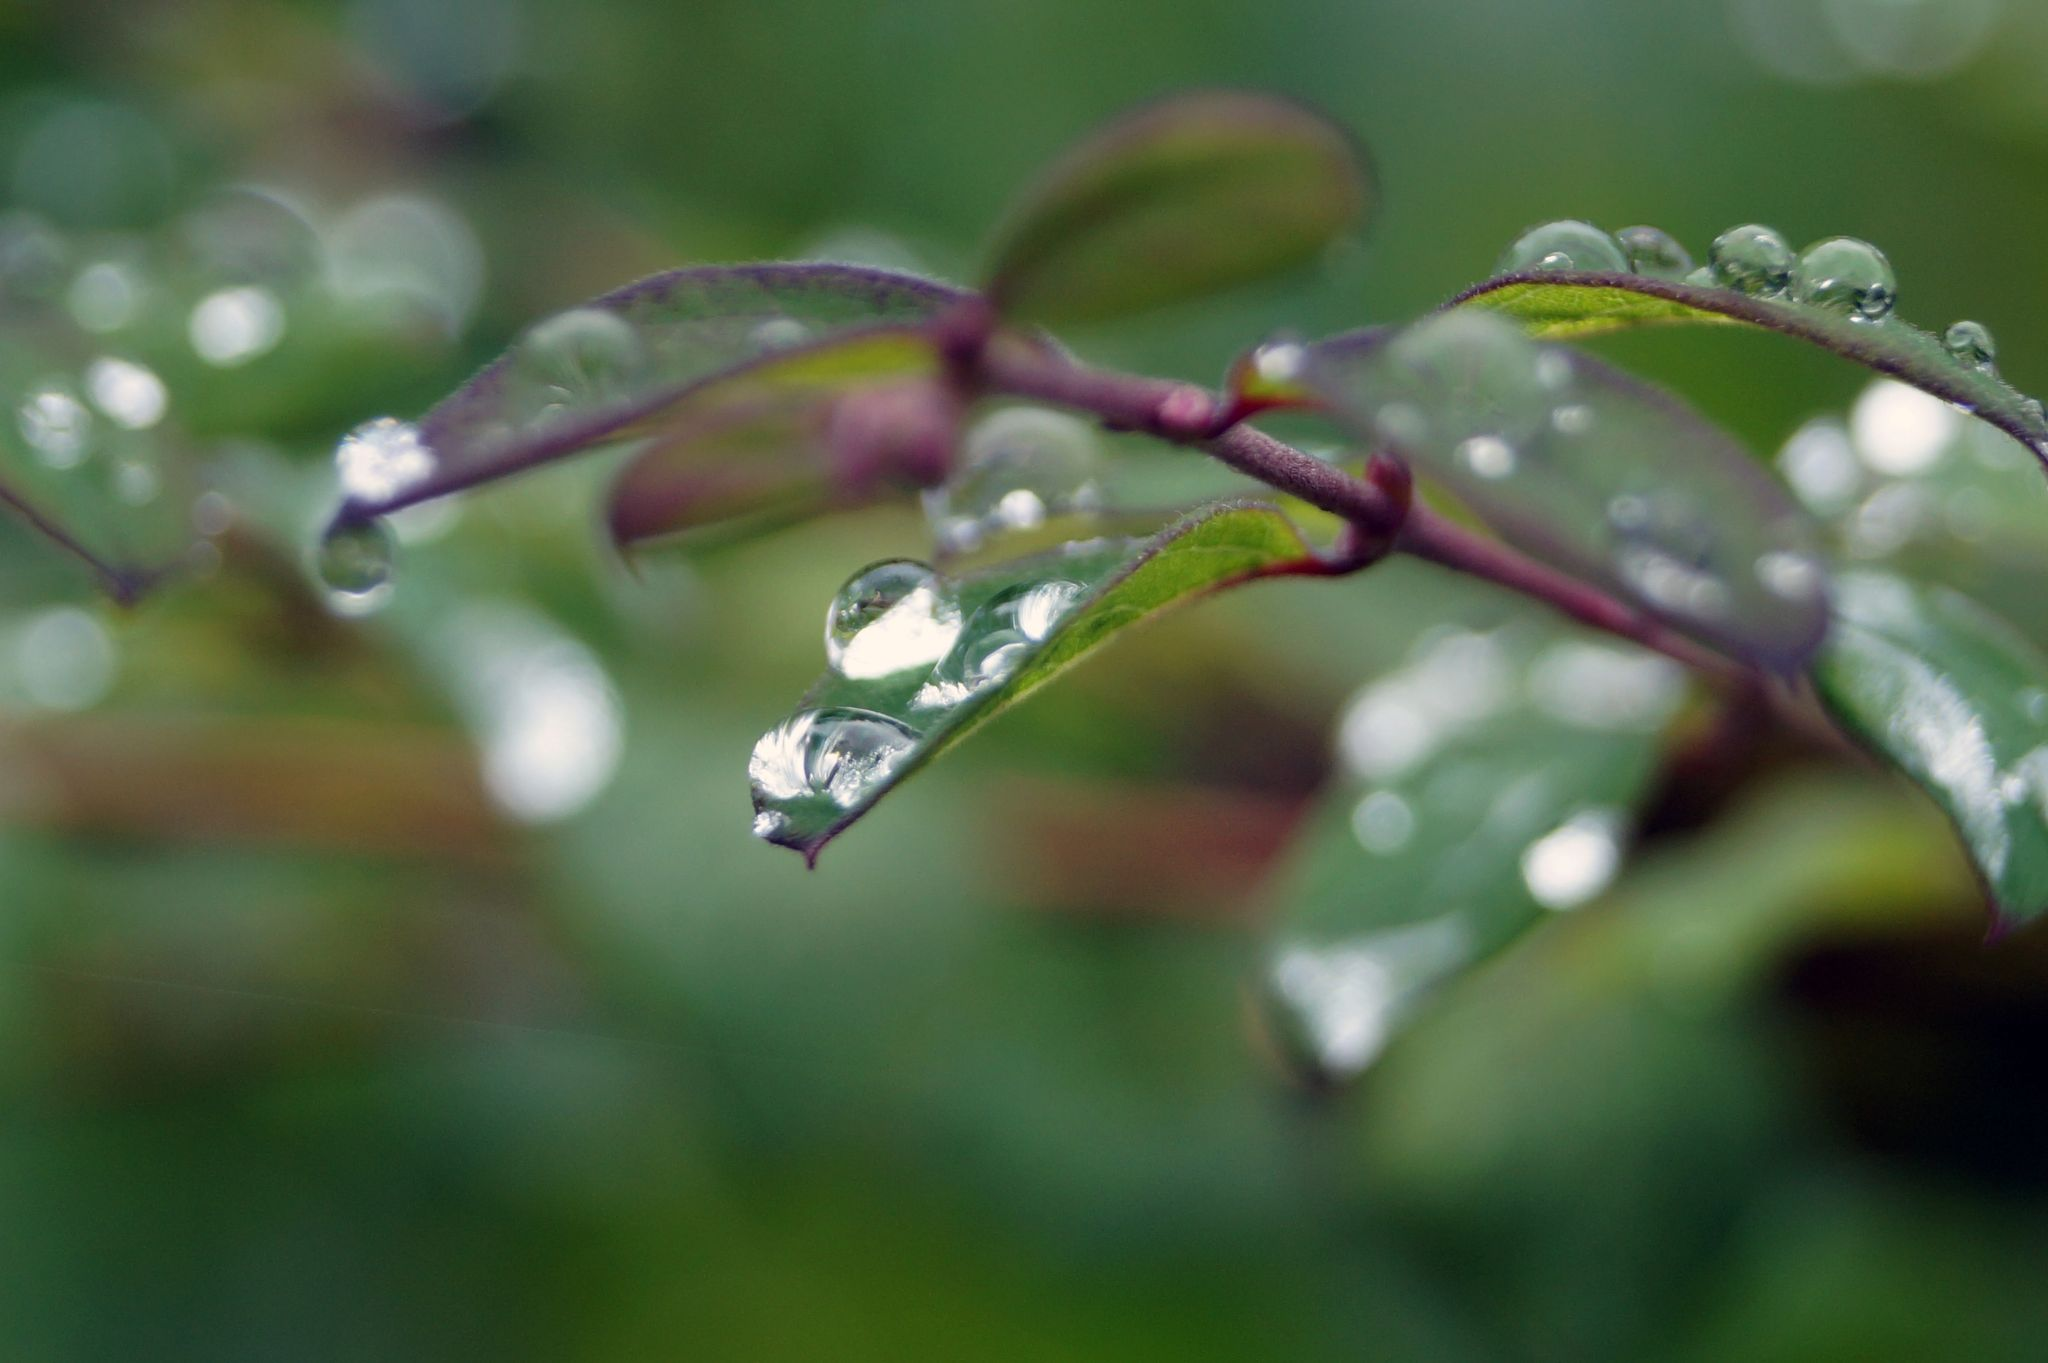 Droplets by Syeda Rosina Begum